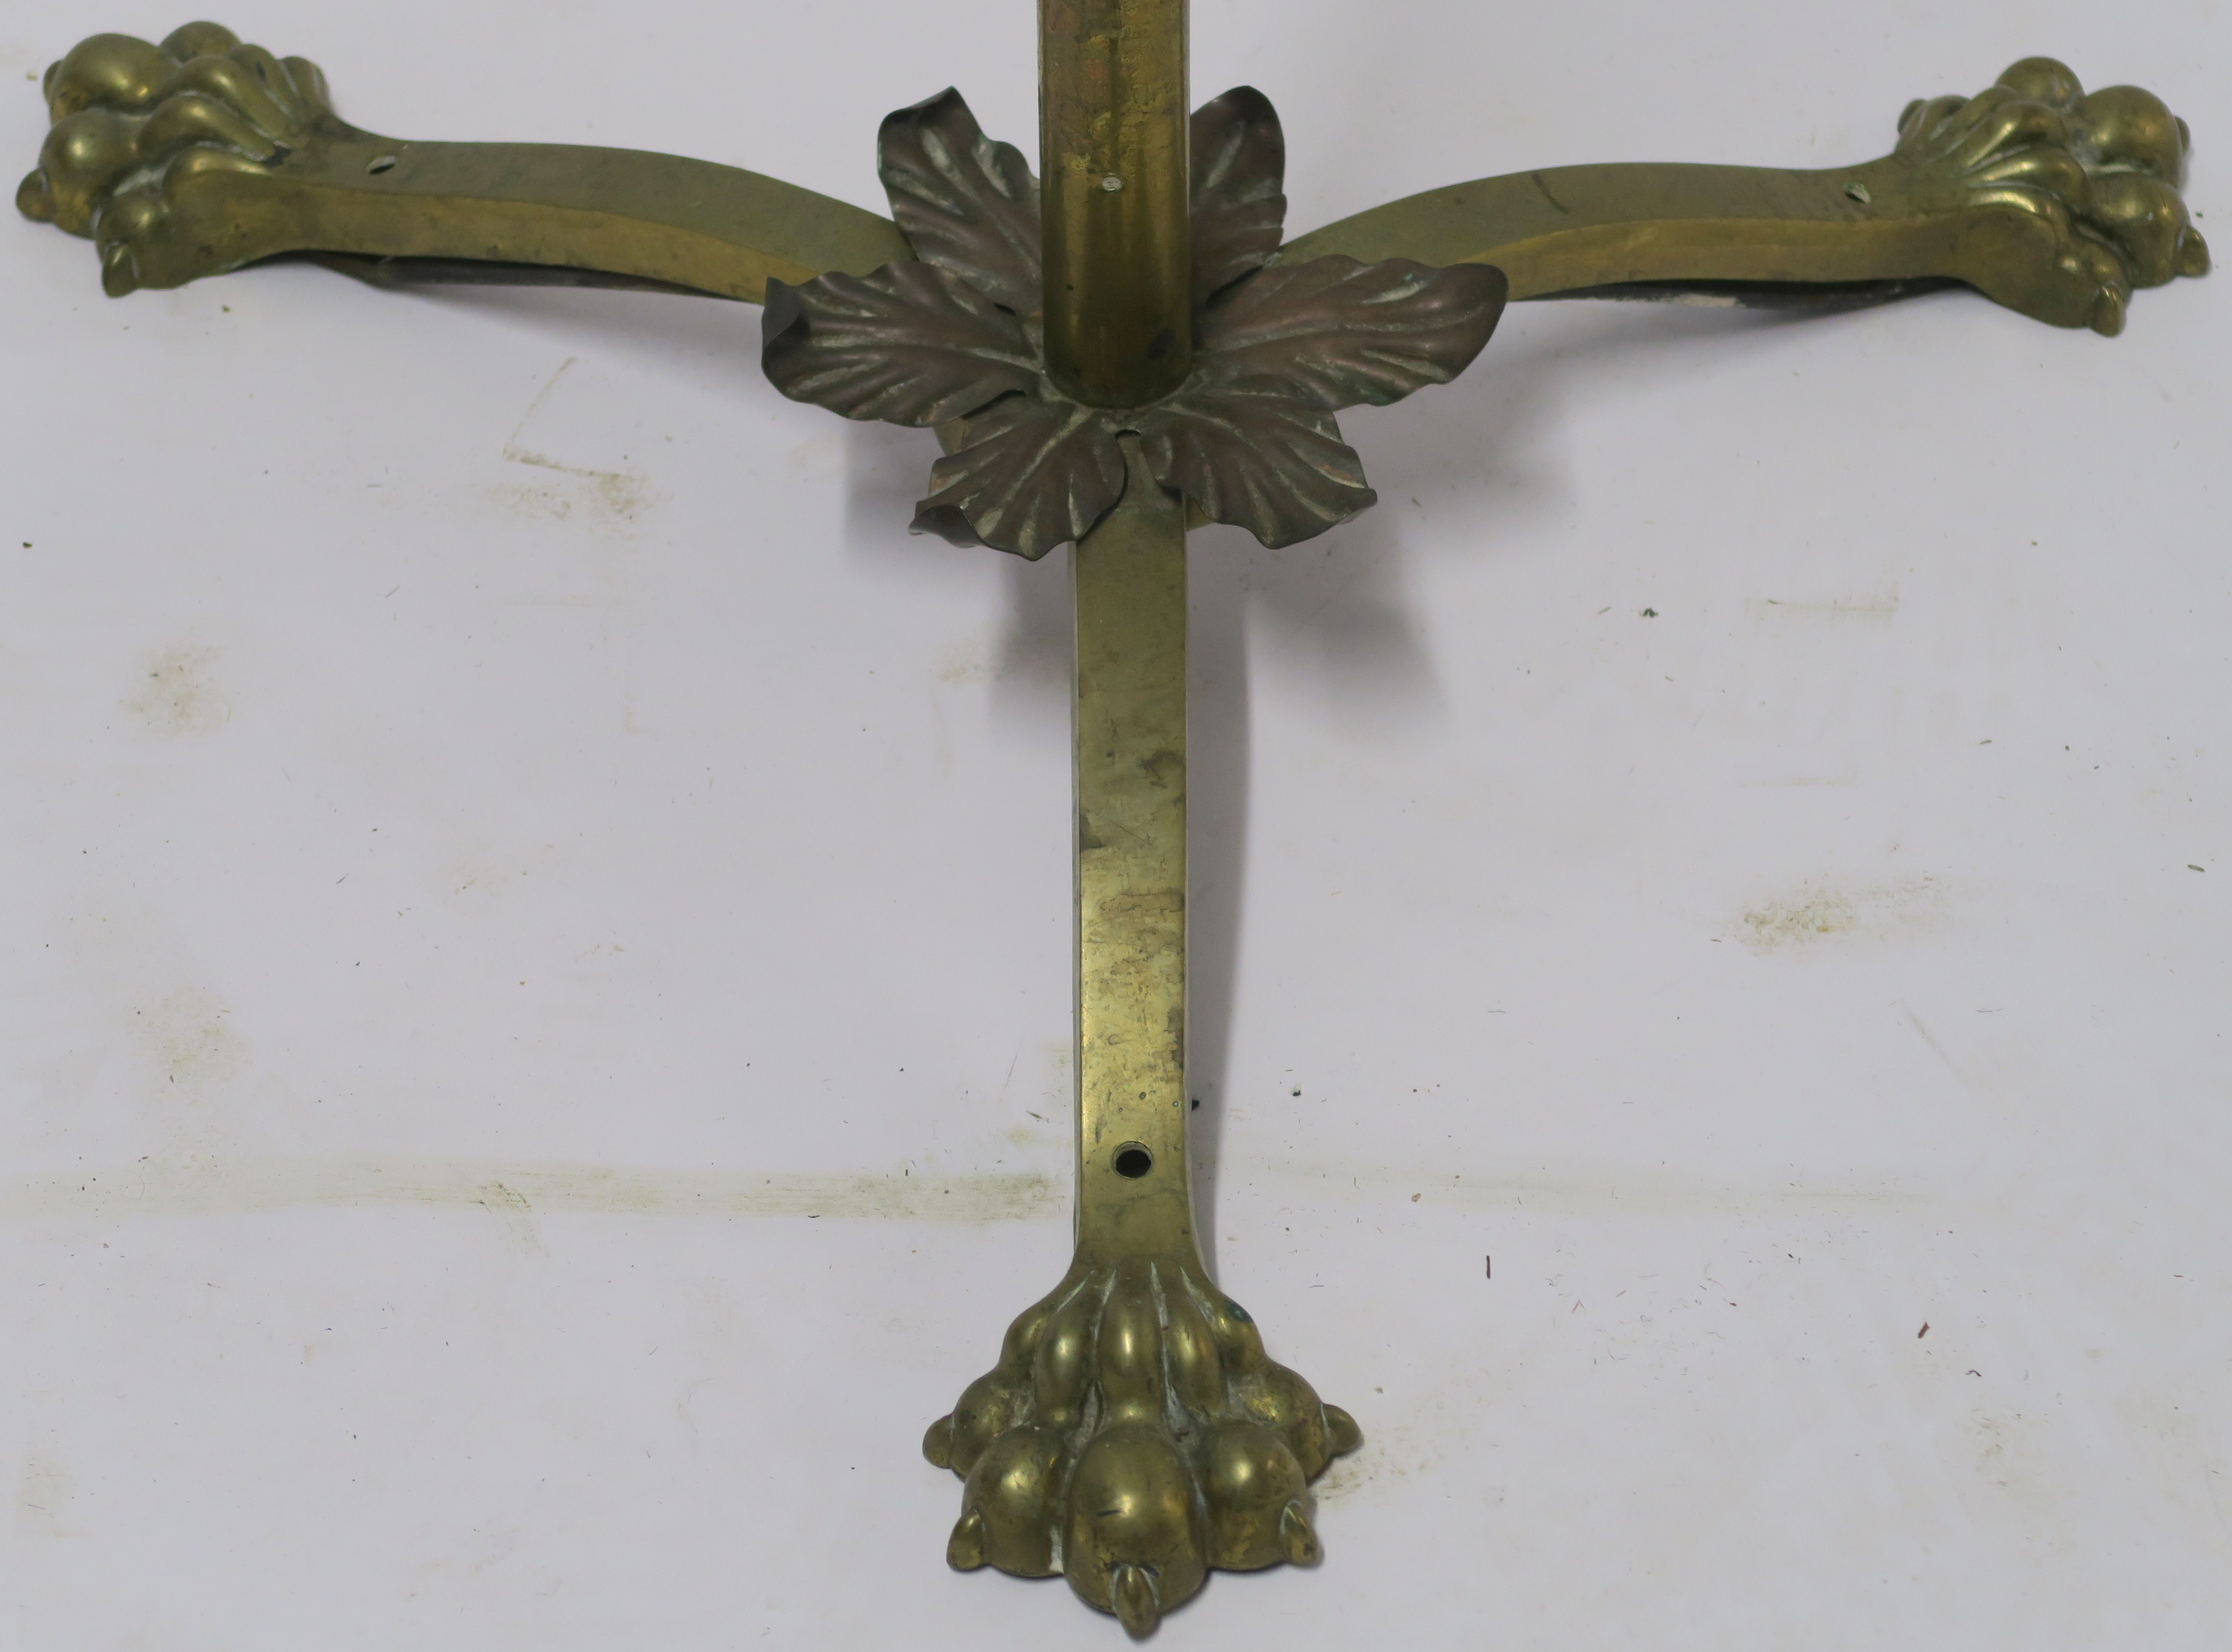 A BRASS STANDARD LAMP Condition Report: Available upon request - Image 2 of 3